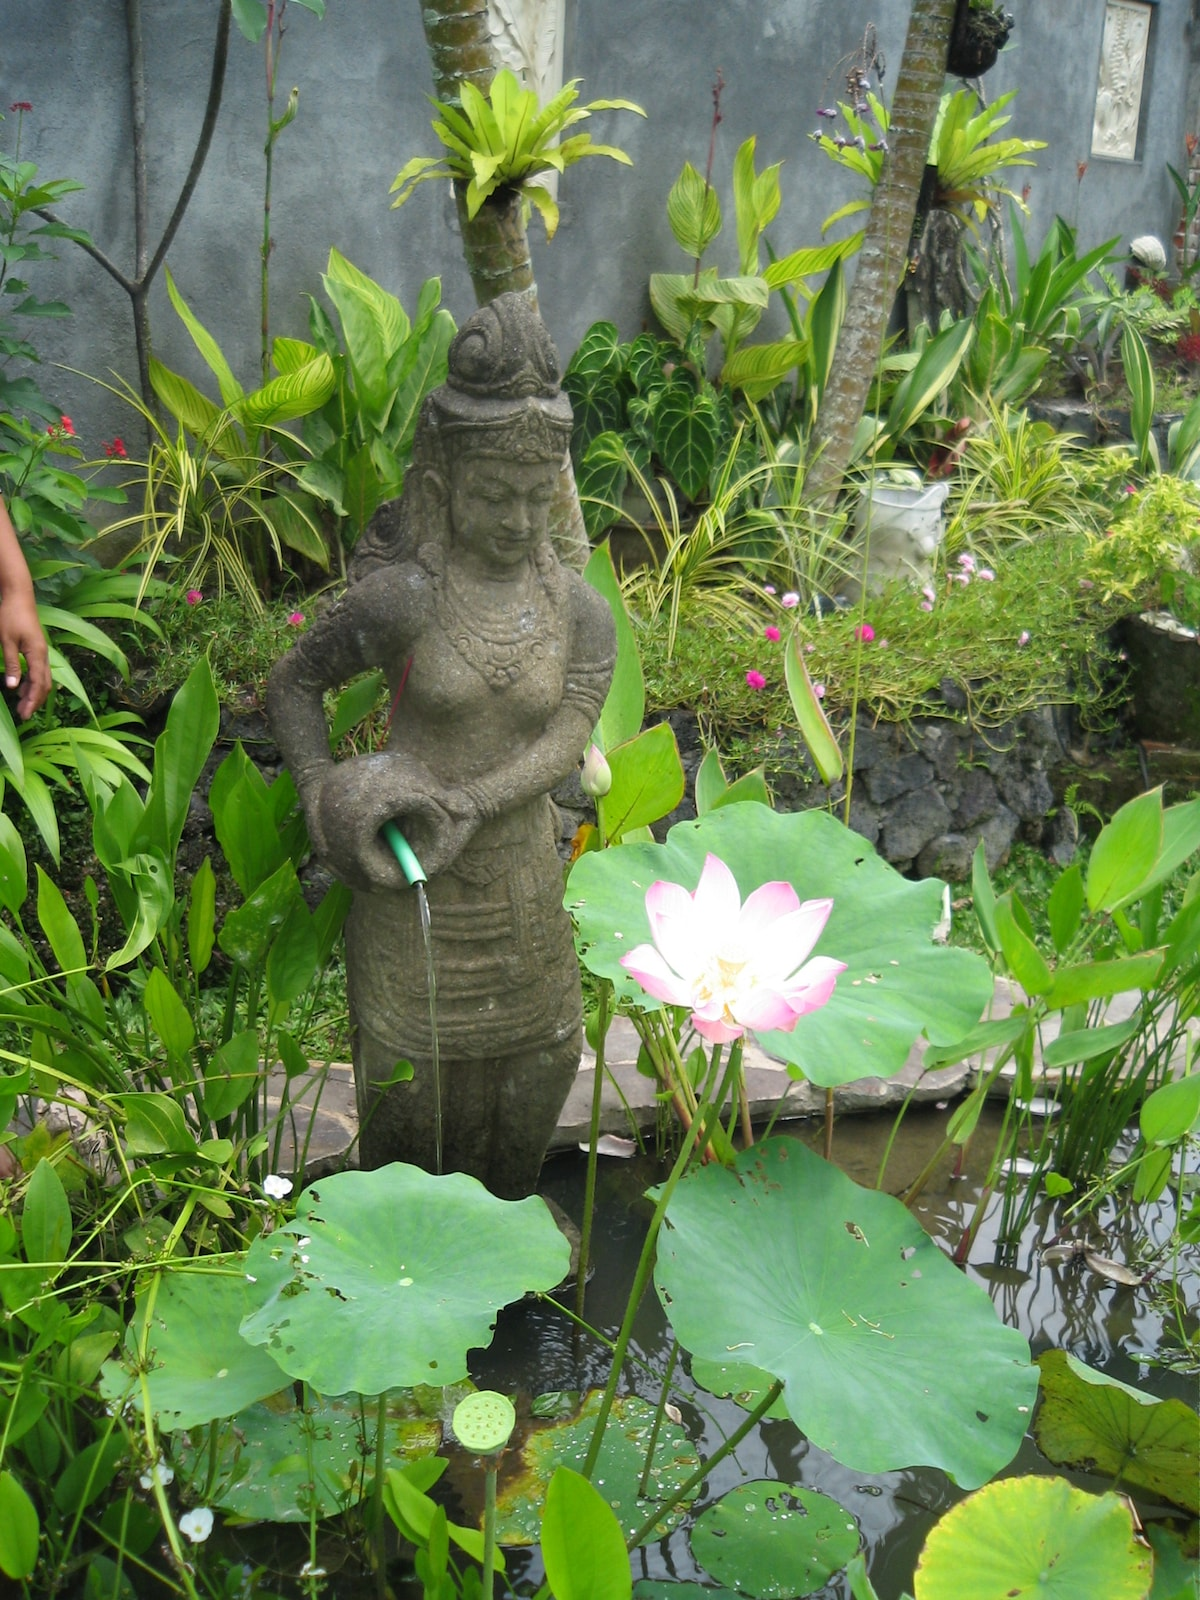 Goddess and lotus pond.